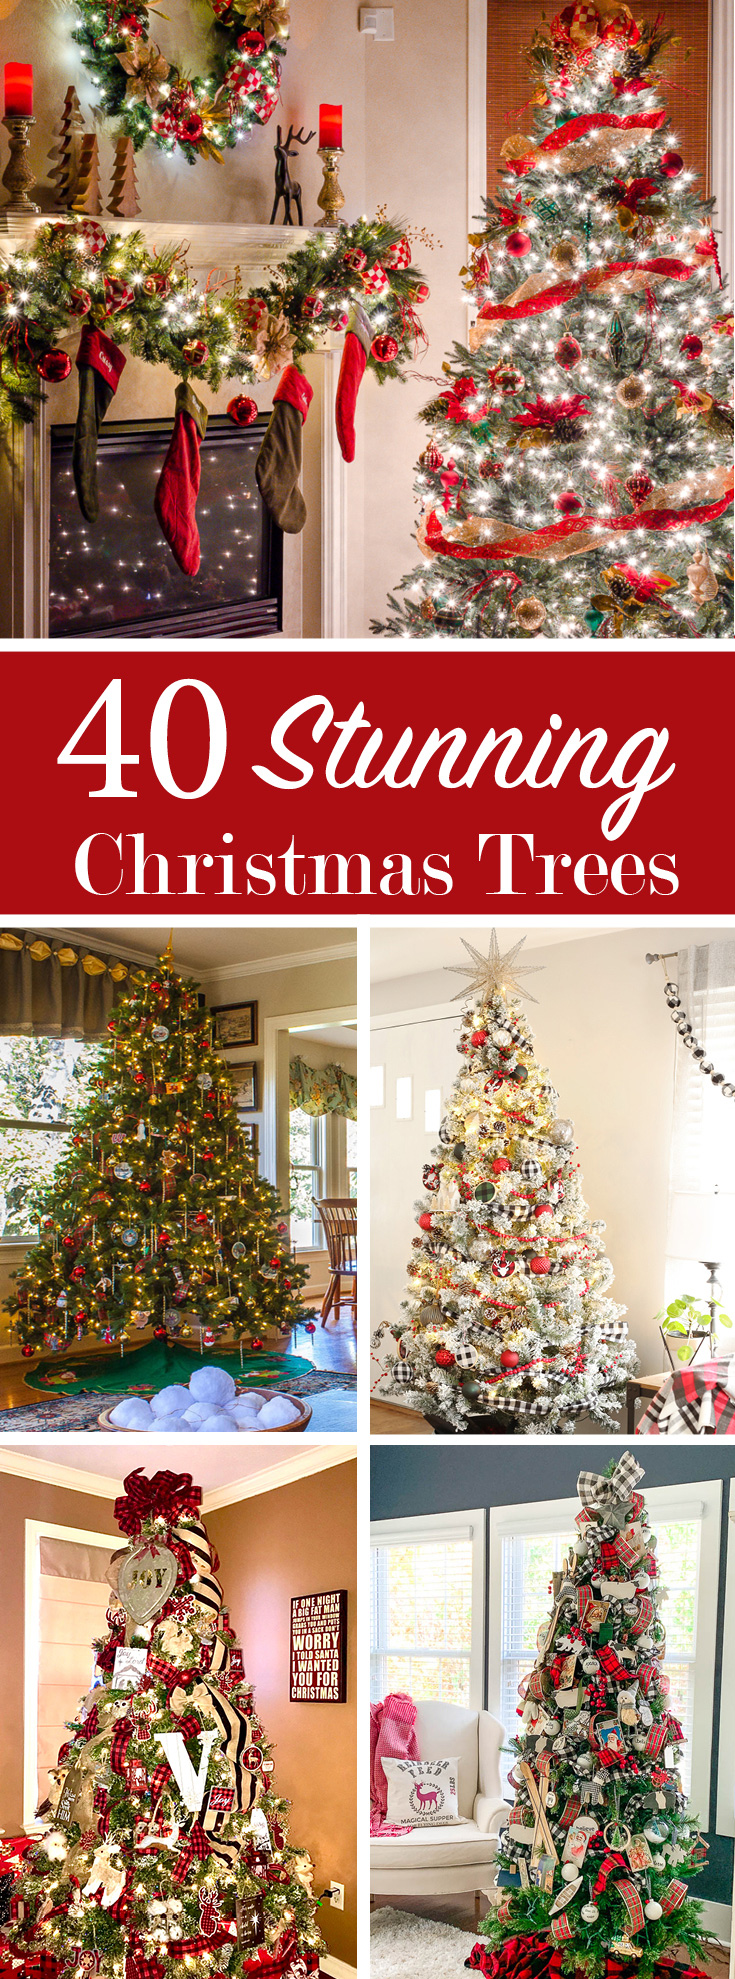 40 stunning Christmas trees